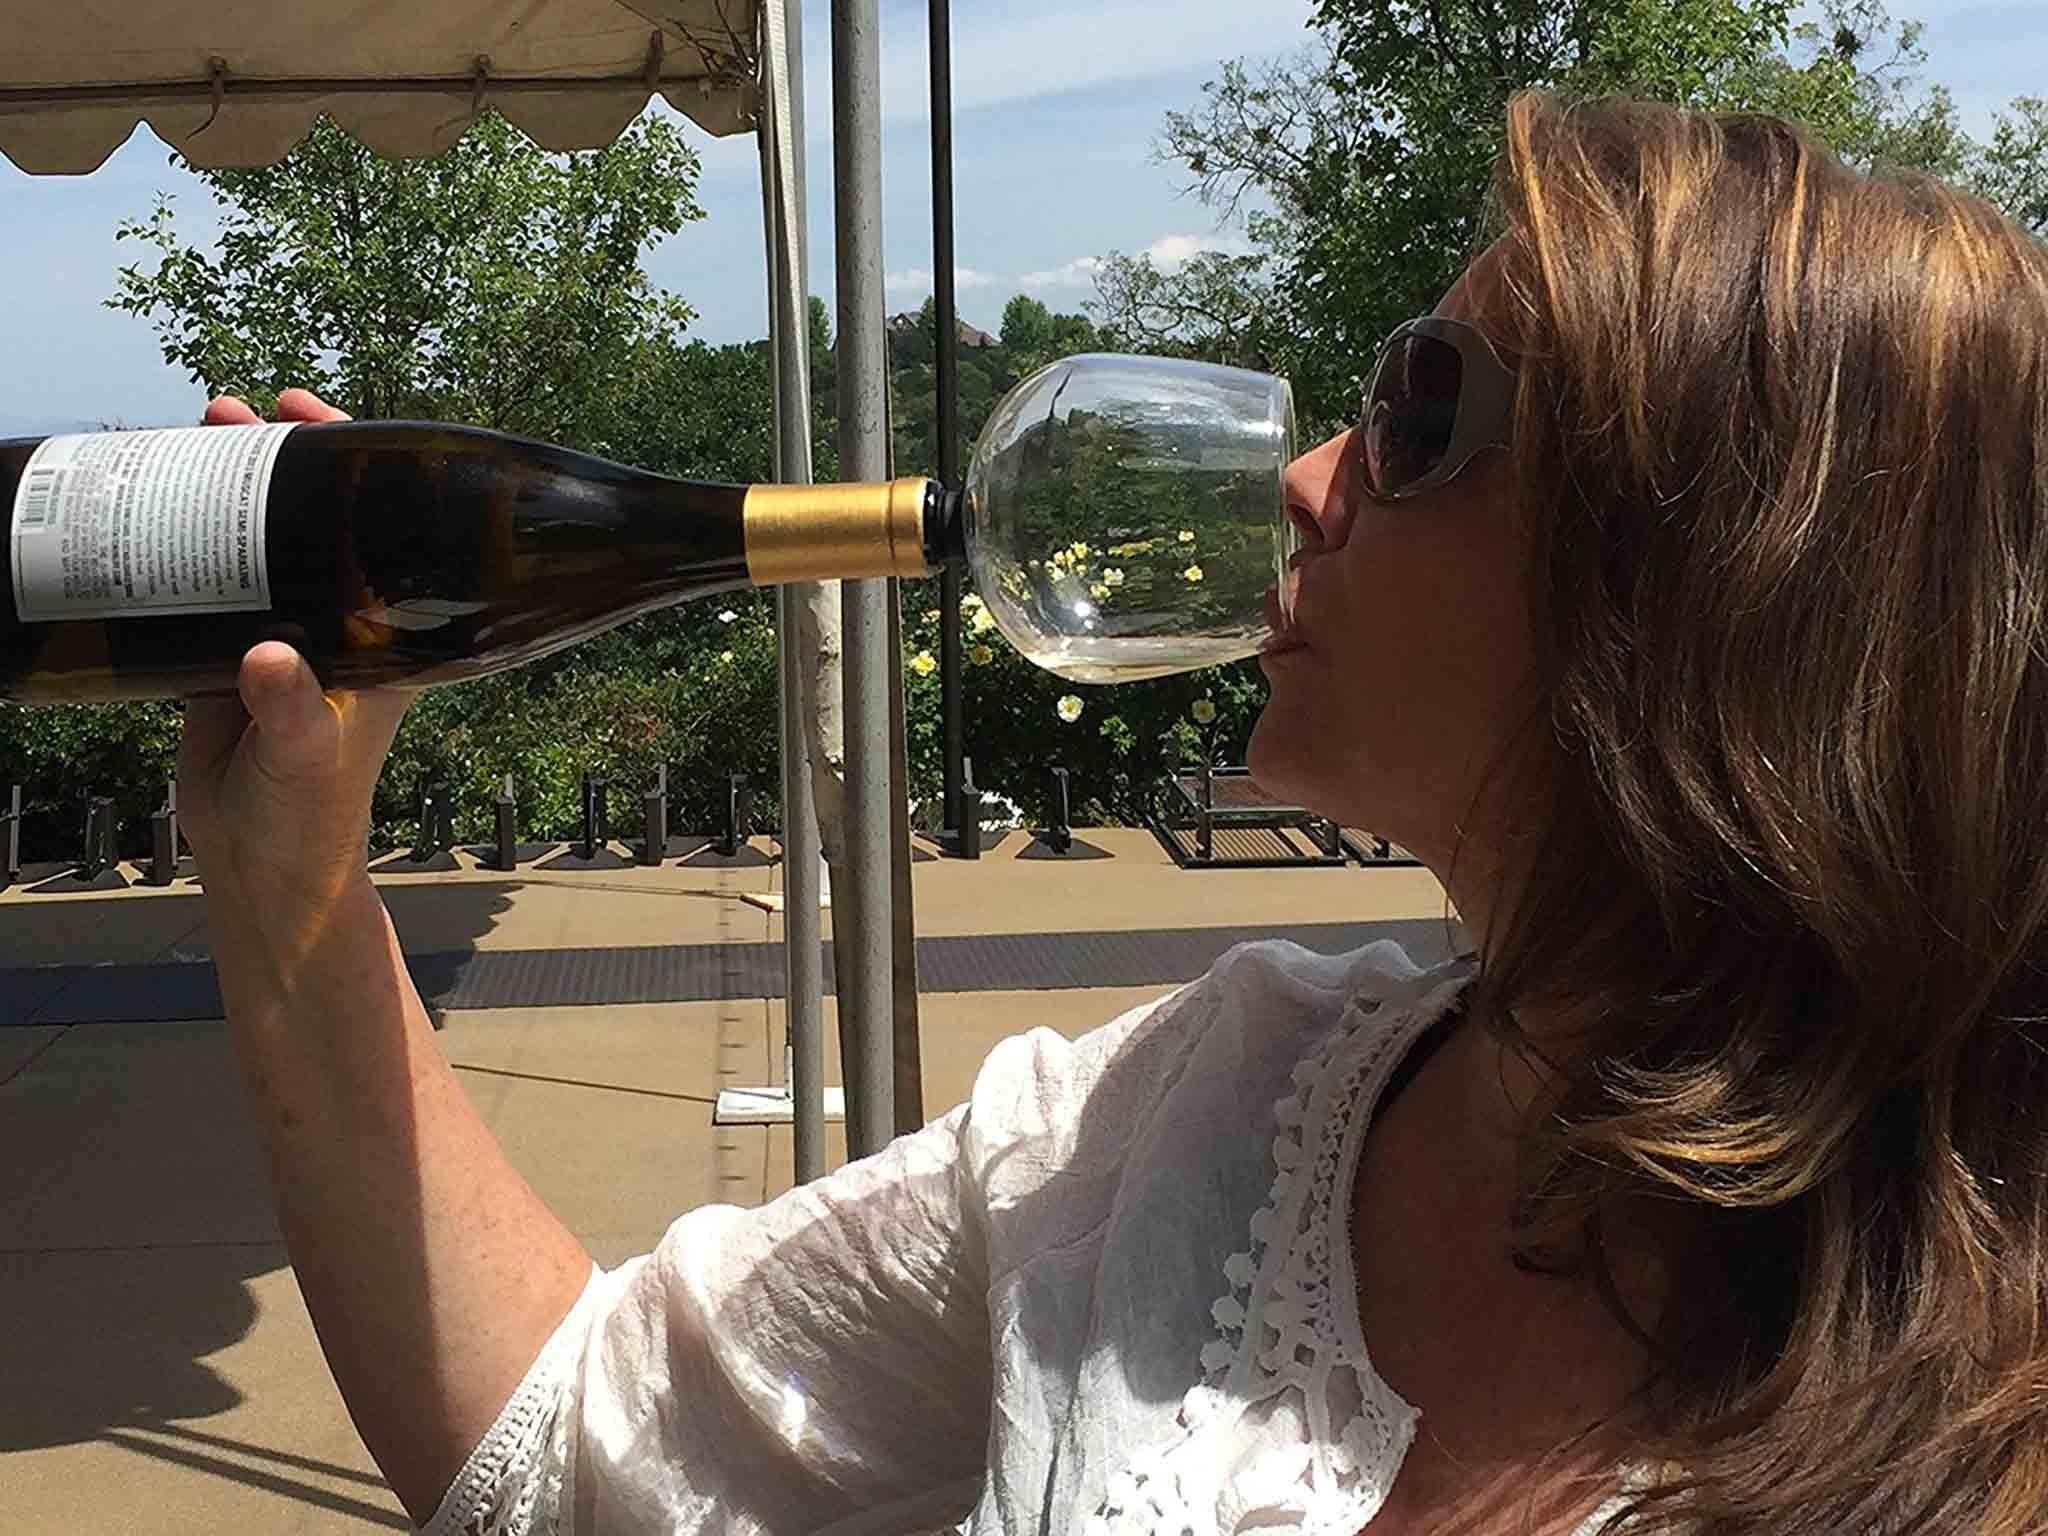 New wine glass attaches to bottle to let you fill your glass even faster